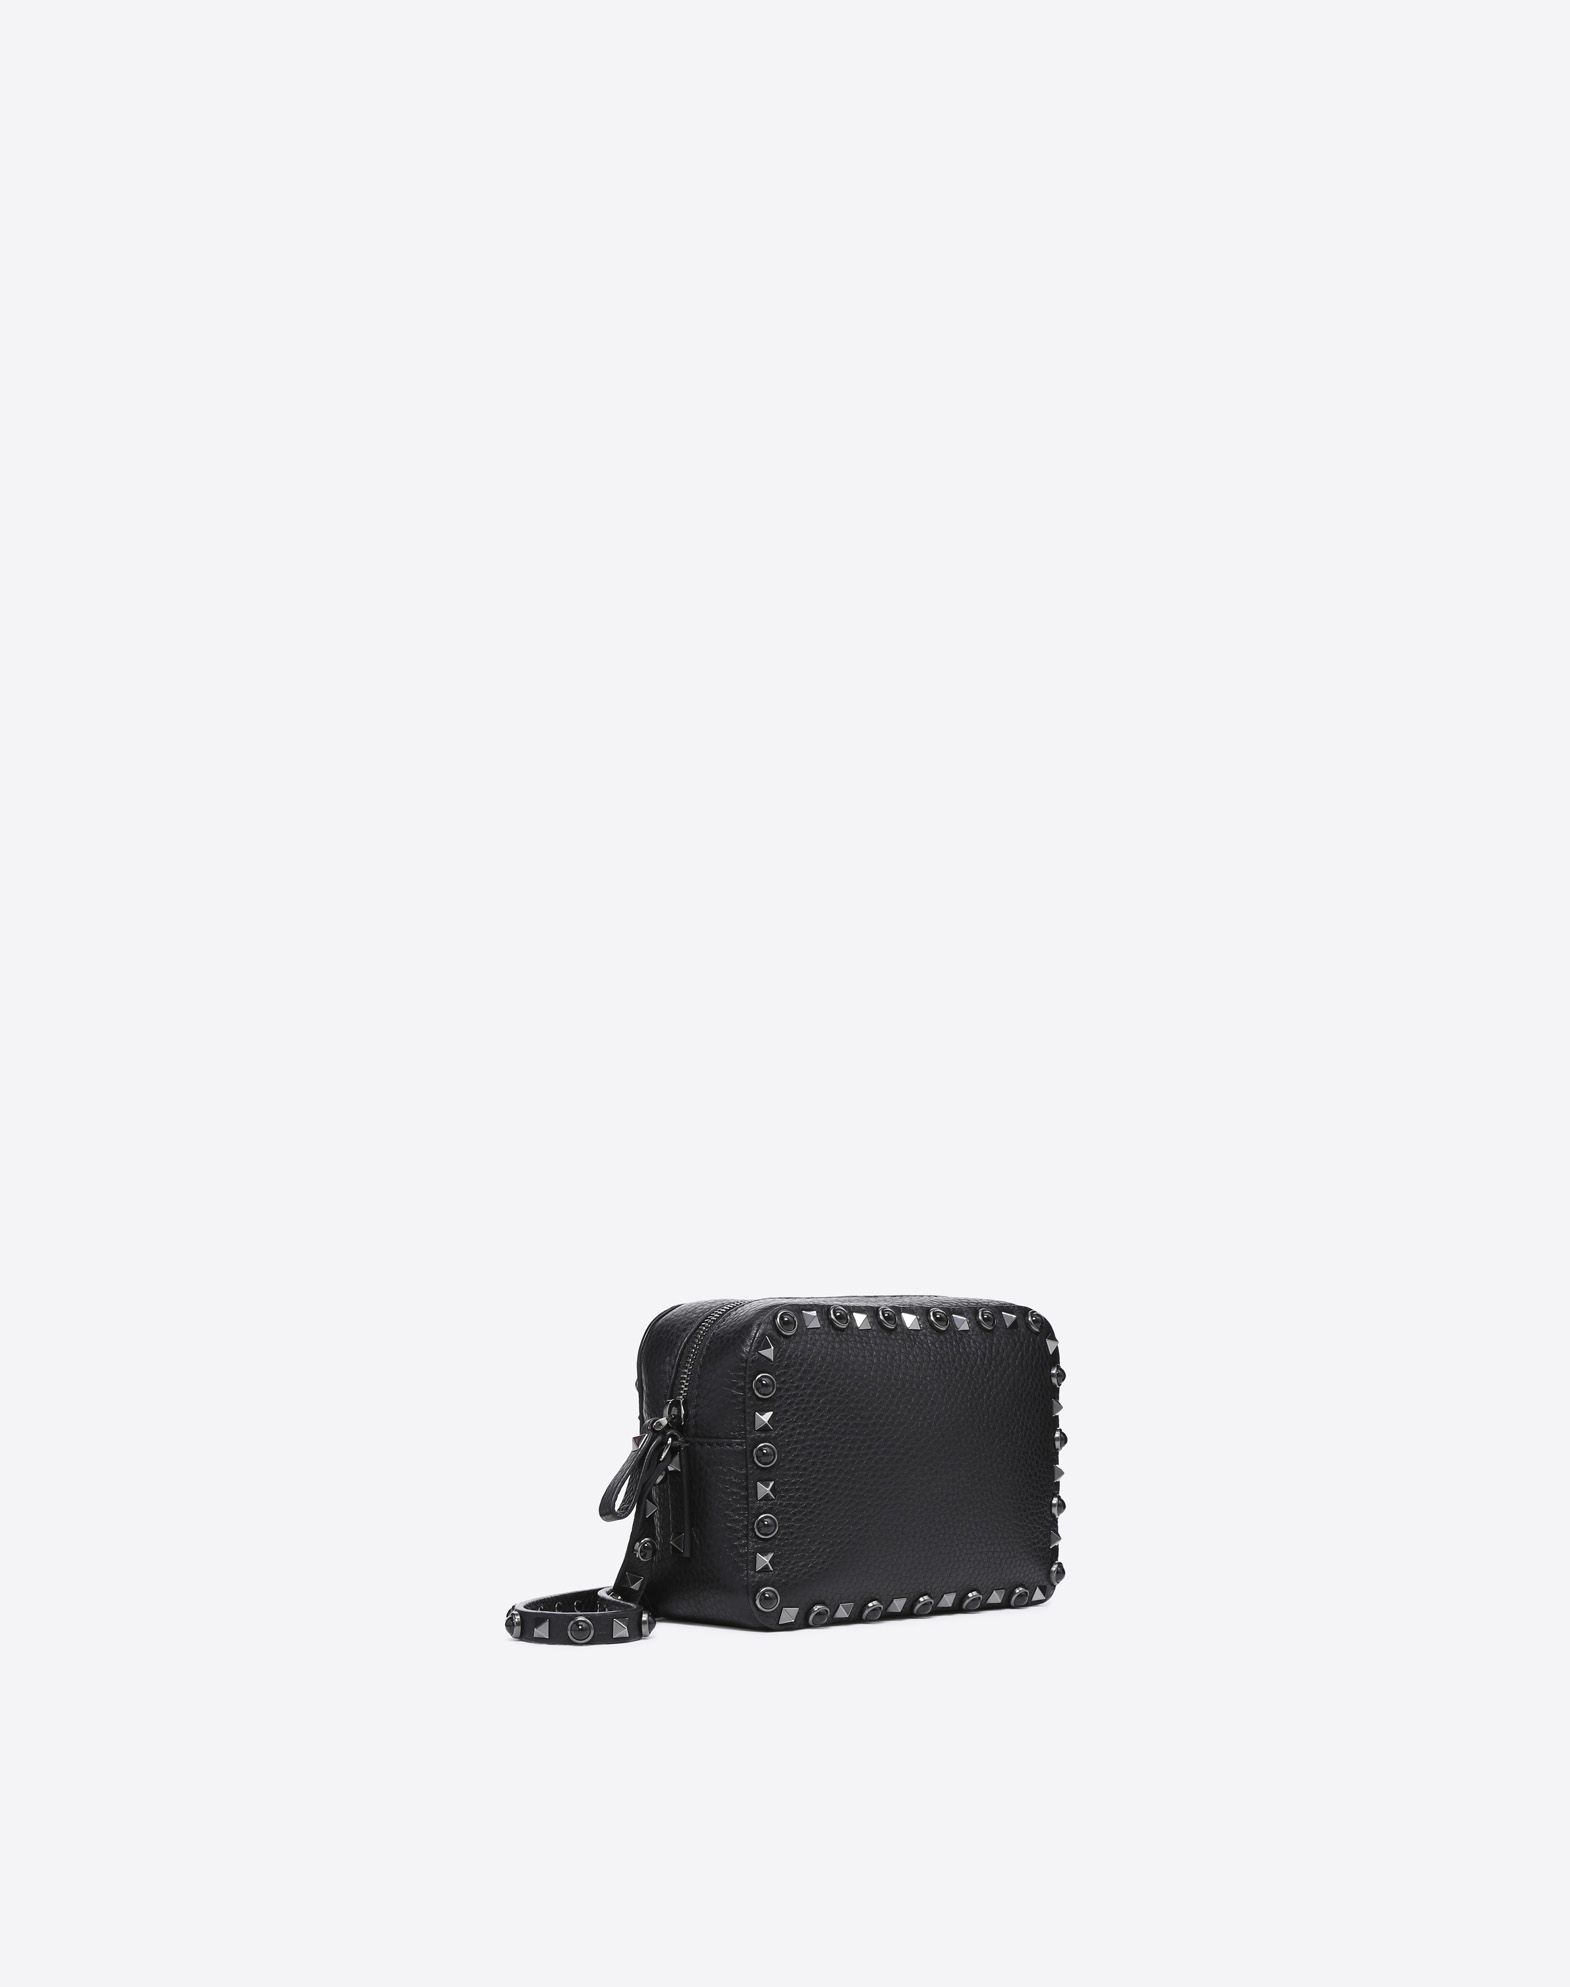 VALENTINO GARAVANI Rockstud Rolling Noir Cross Body Bag CROSS BODY BAG D r